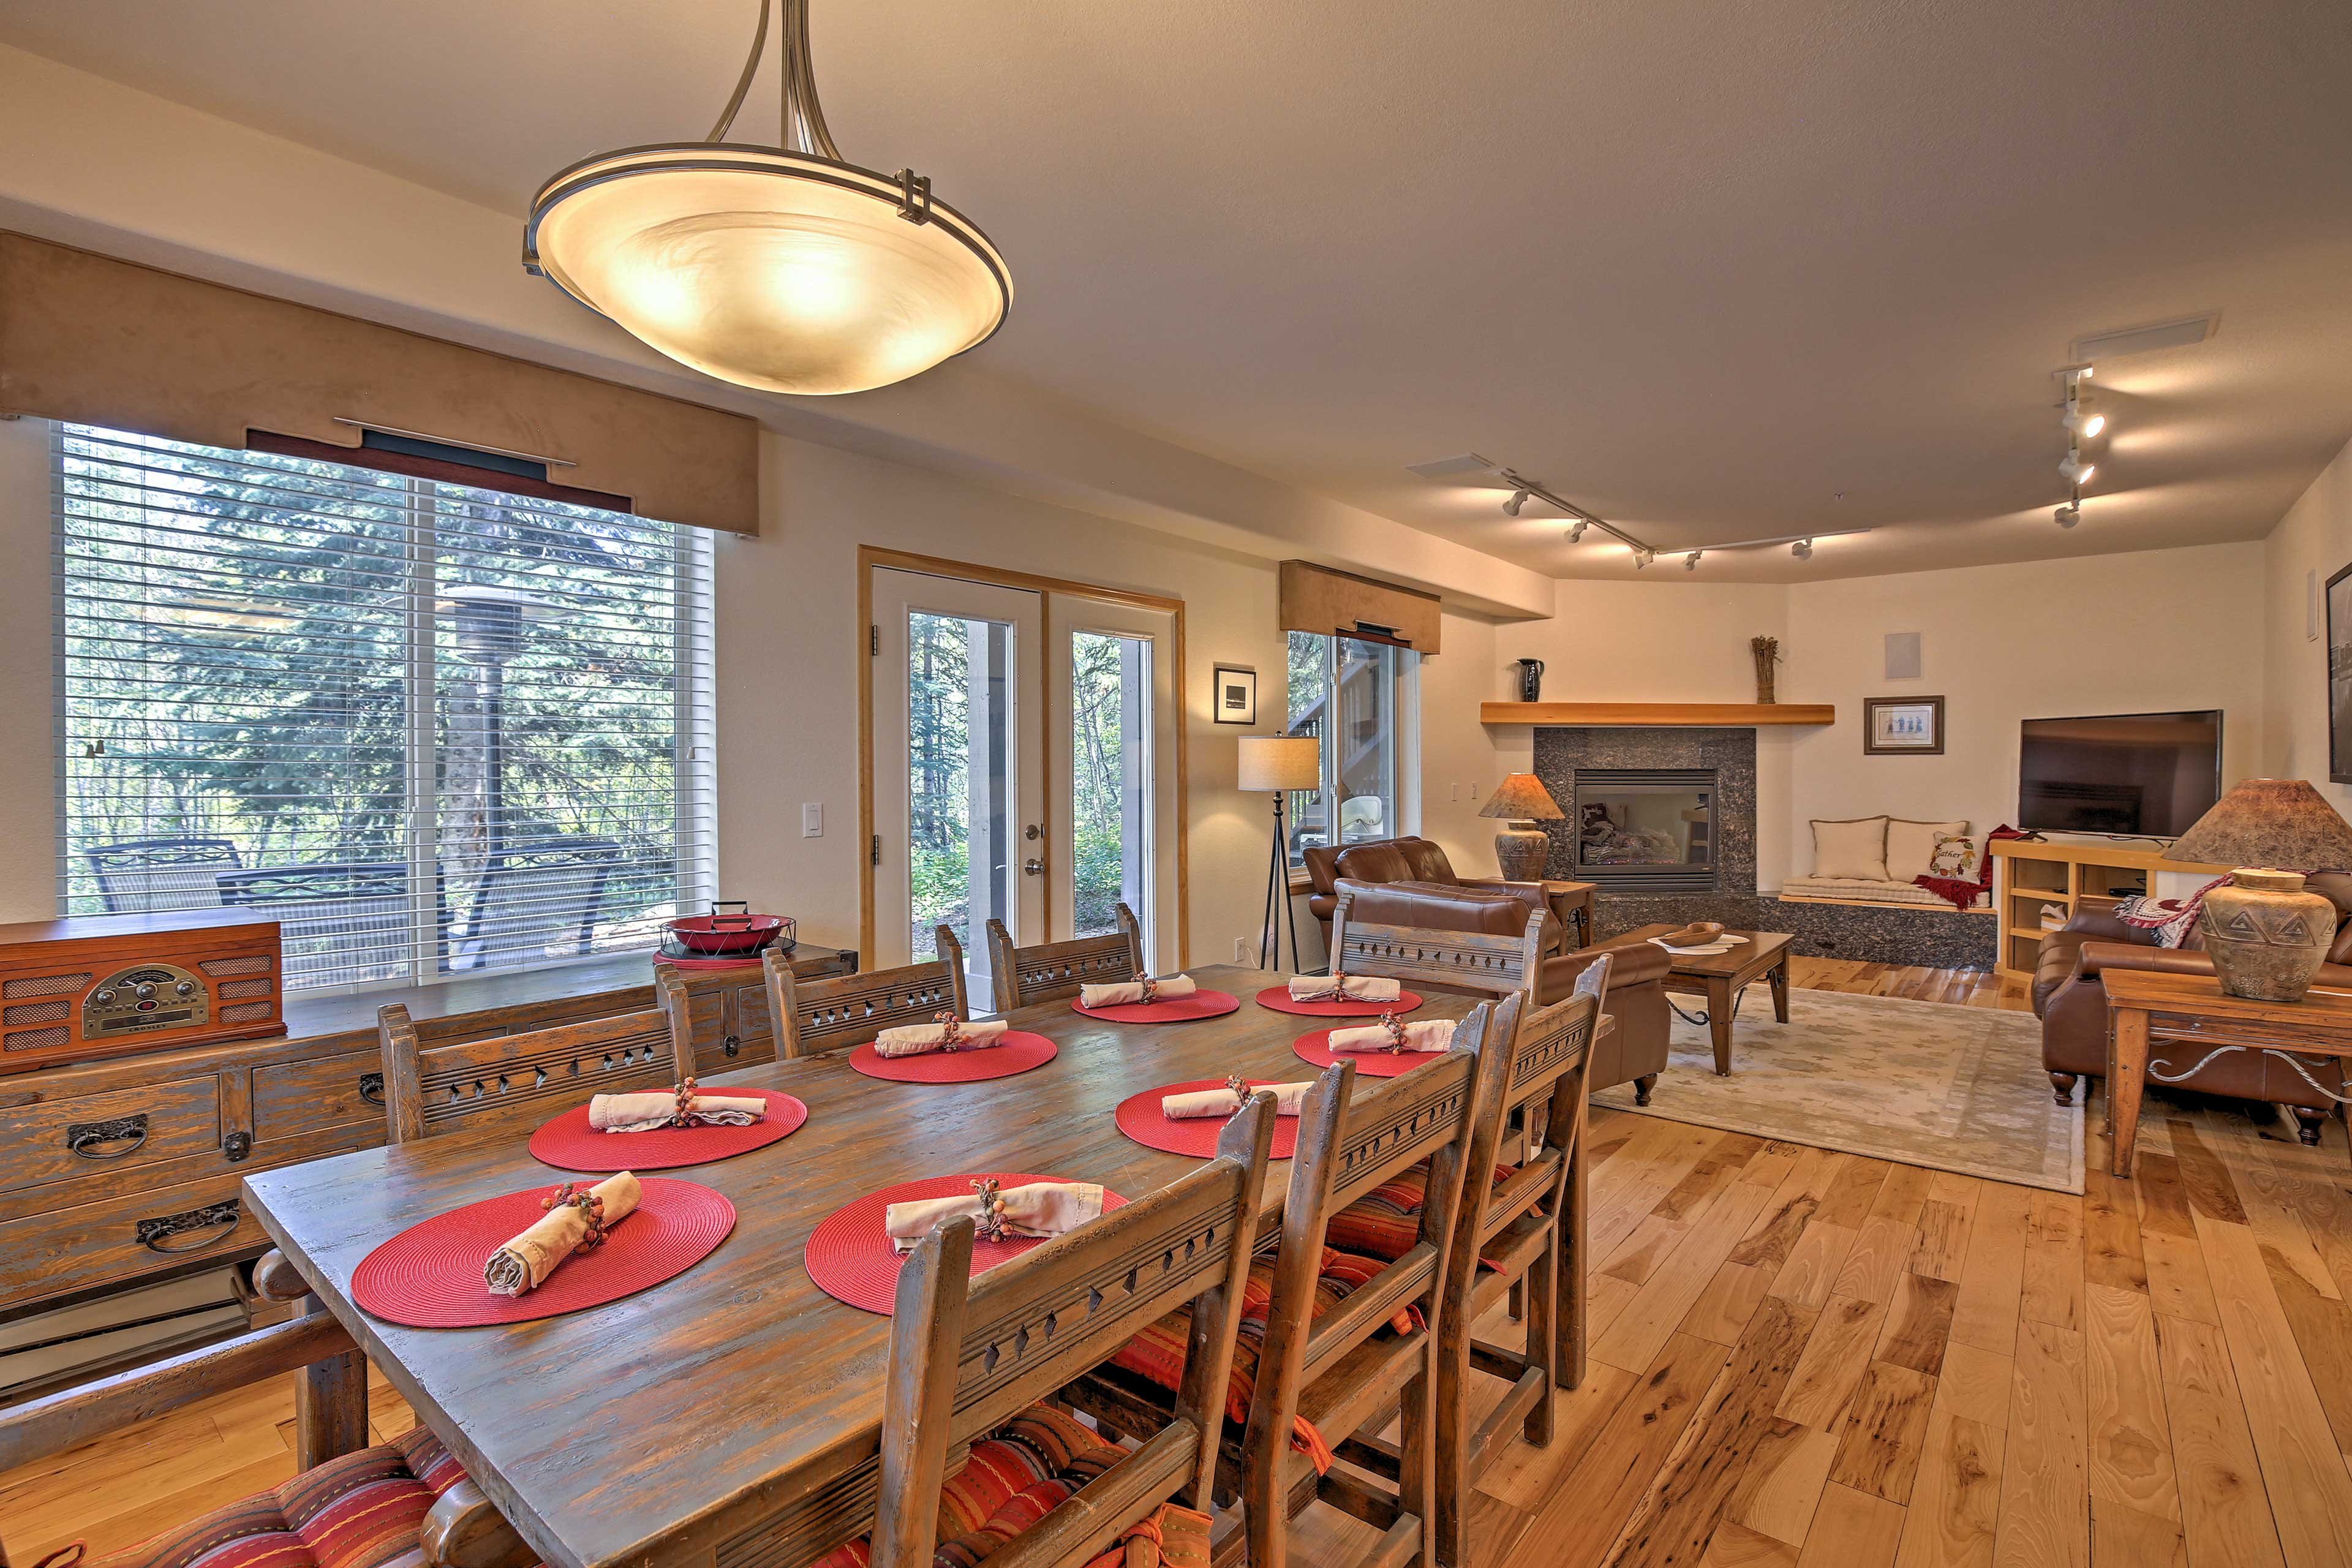 An open floor plan makes it easy for everyone in the group to spend time together.